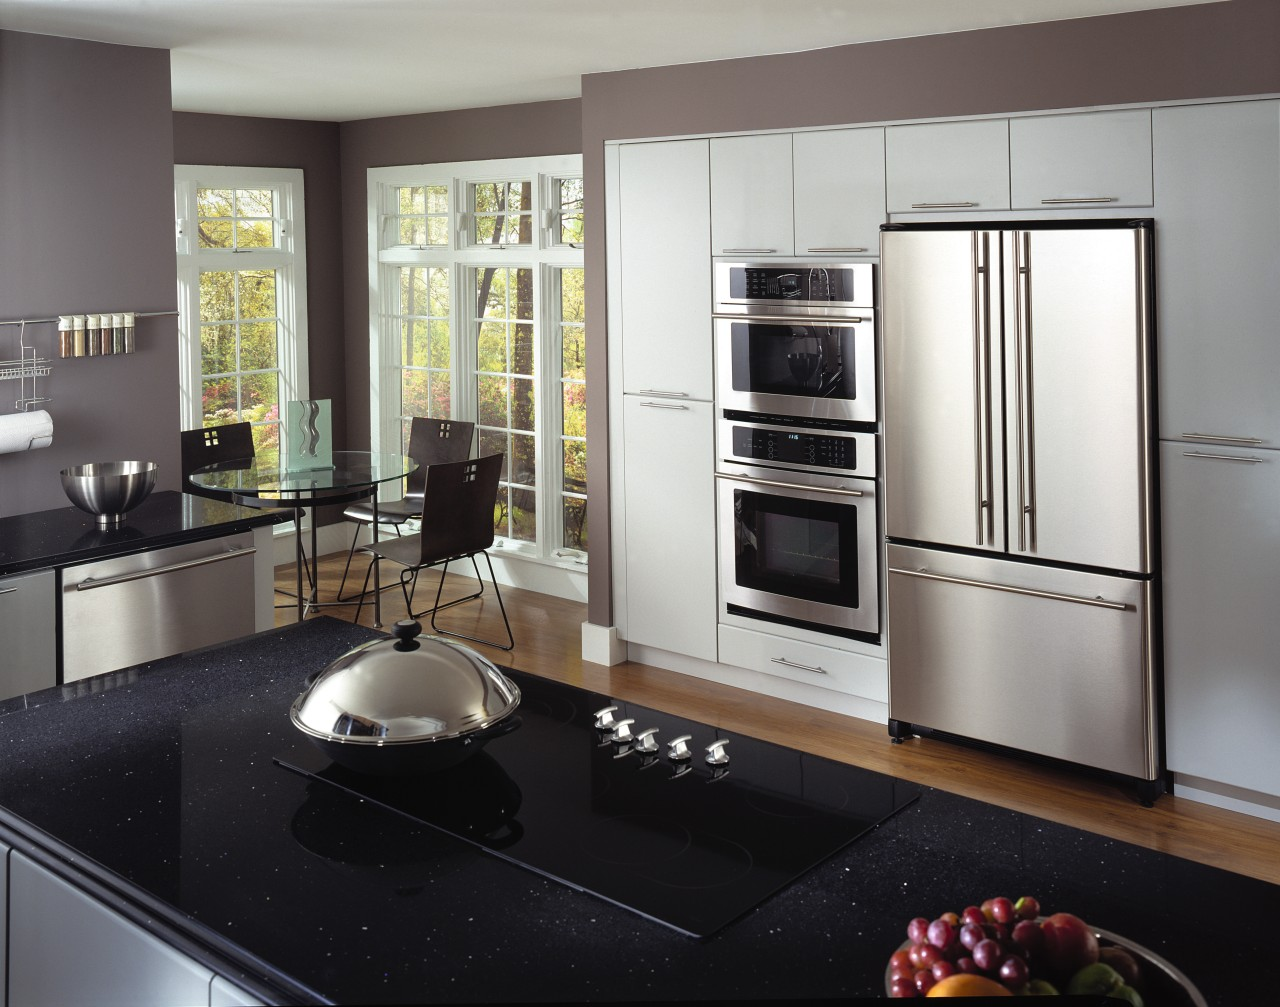 An example of an easy to use and cabinetry, countertop, cuisine classique, home appliance, interior design, kitchen, kitchen appliance, kitchen stove, major appliance, refrigerator, gray, black